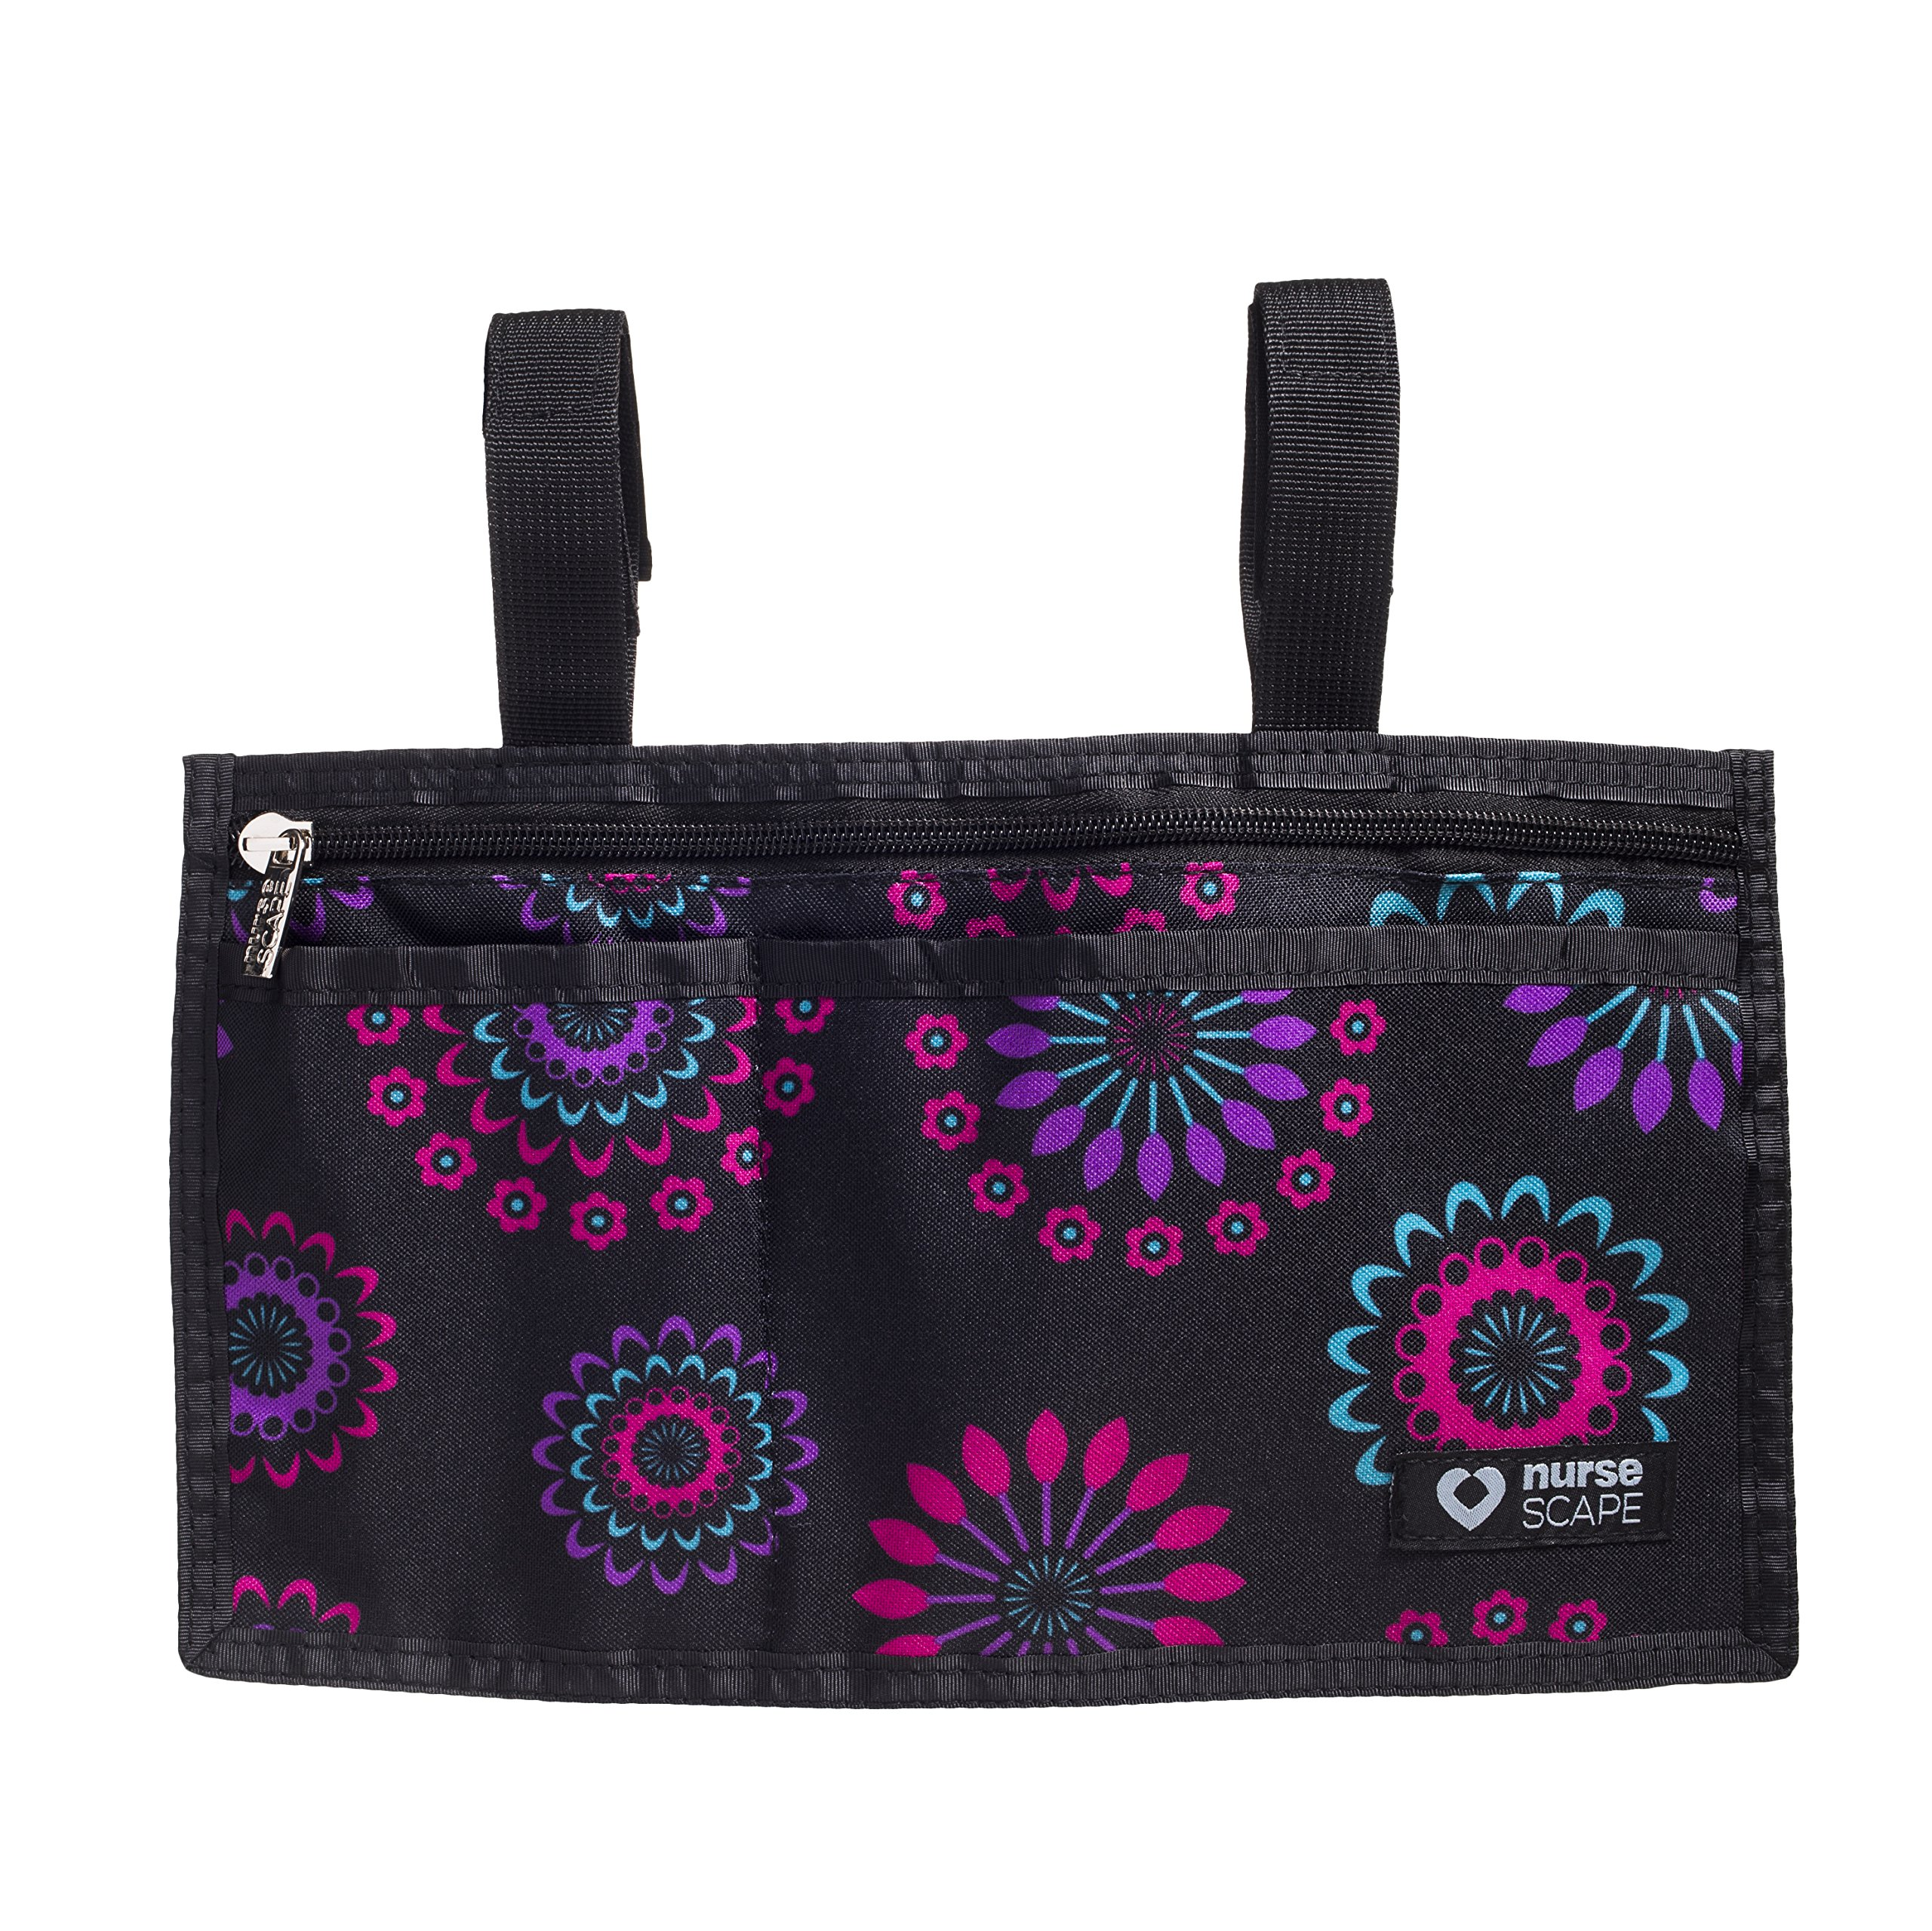 Wheelchair Armrest Pouch Organizer Bag for Side of Chair, 3 Pocket Tote, Arm Rest Storage Accessories for Electric, Manual or Powered Chairs (Purple Circle)